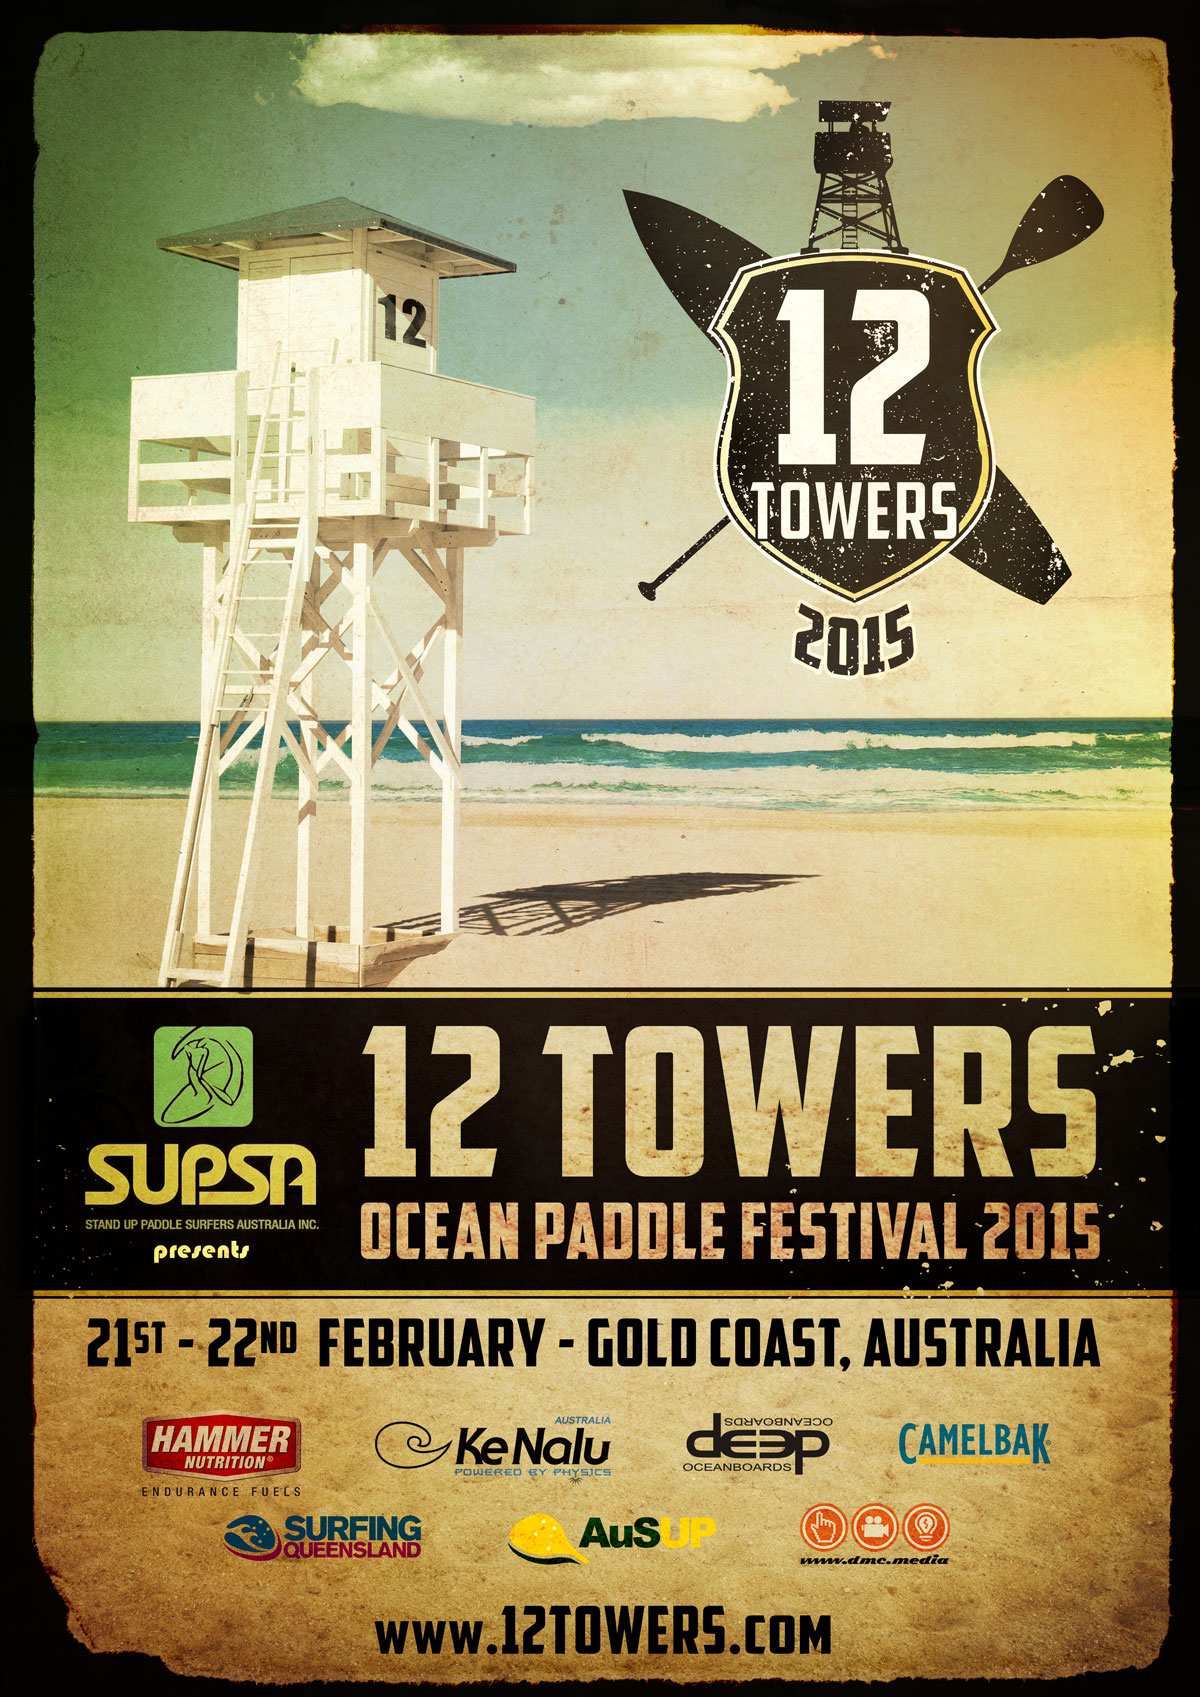 2015 Event Poster Is Out